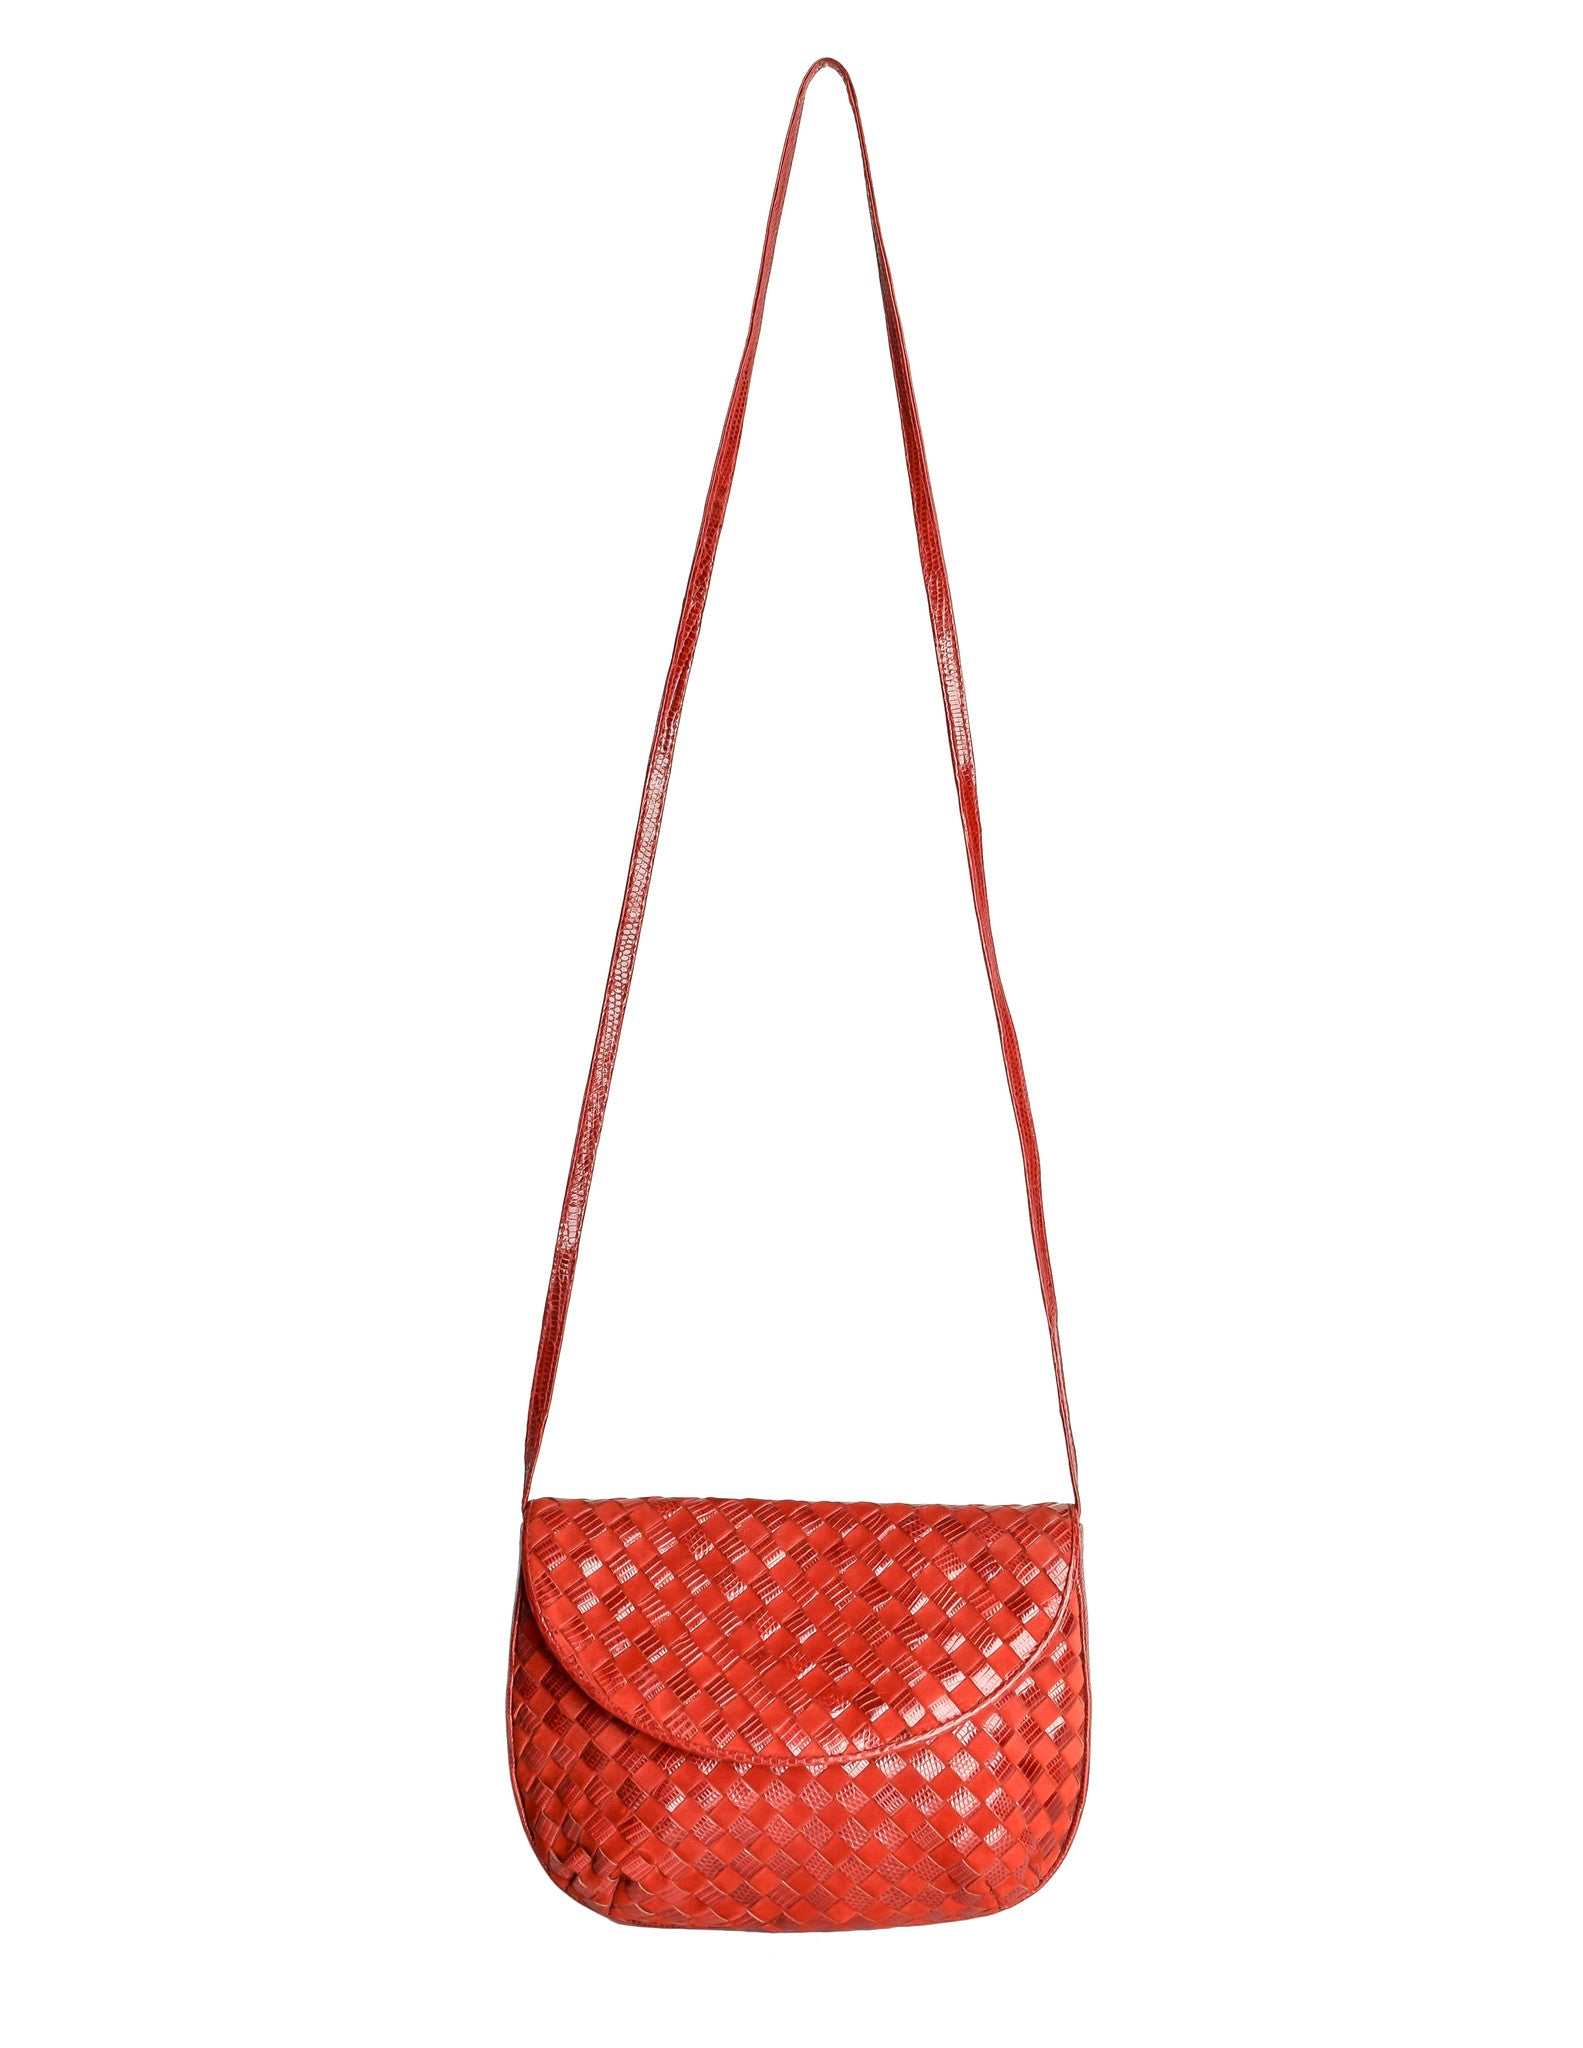 4a2b0de7f8df Bottega Veneta Vintage Intrecciato Red Woven Leather   Suede Crossbody Bag  - Amarcord Vintage Fashion -